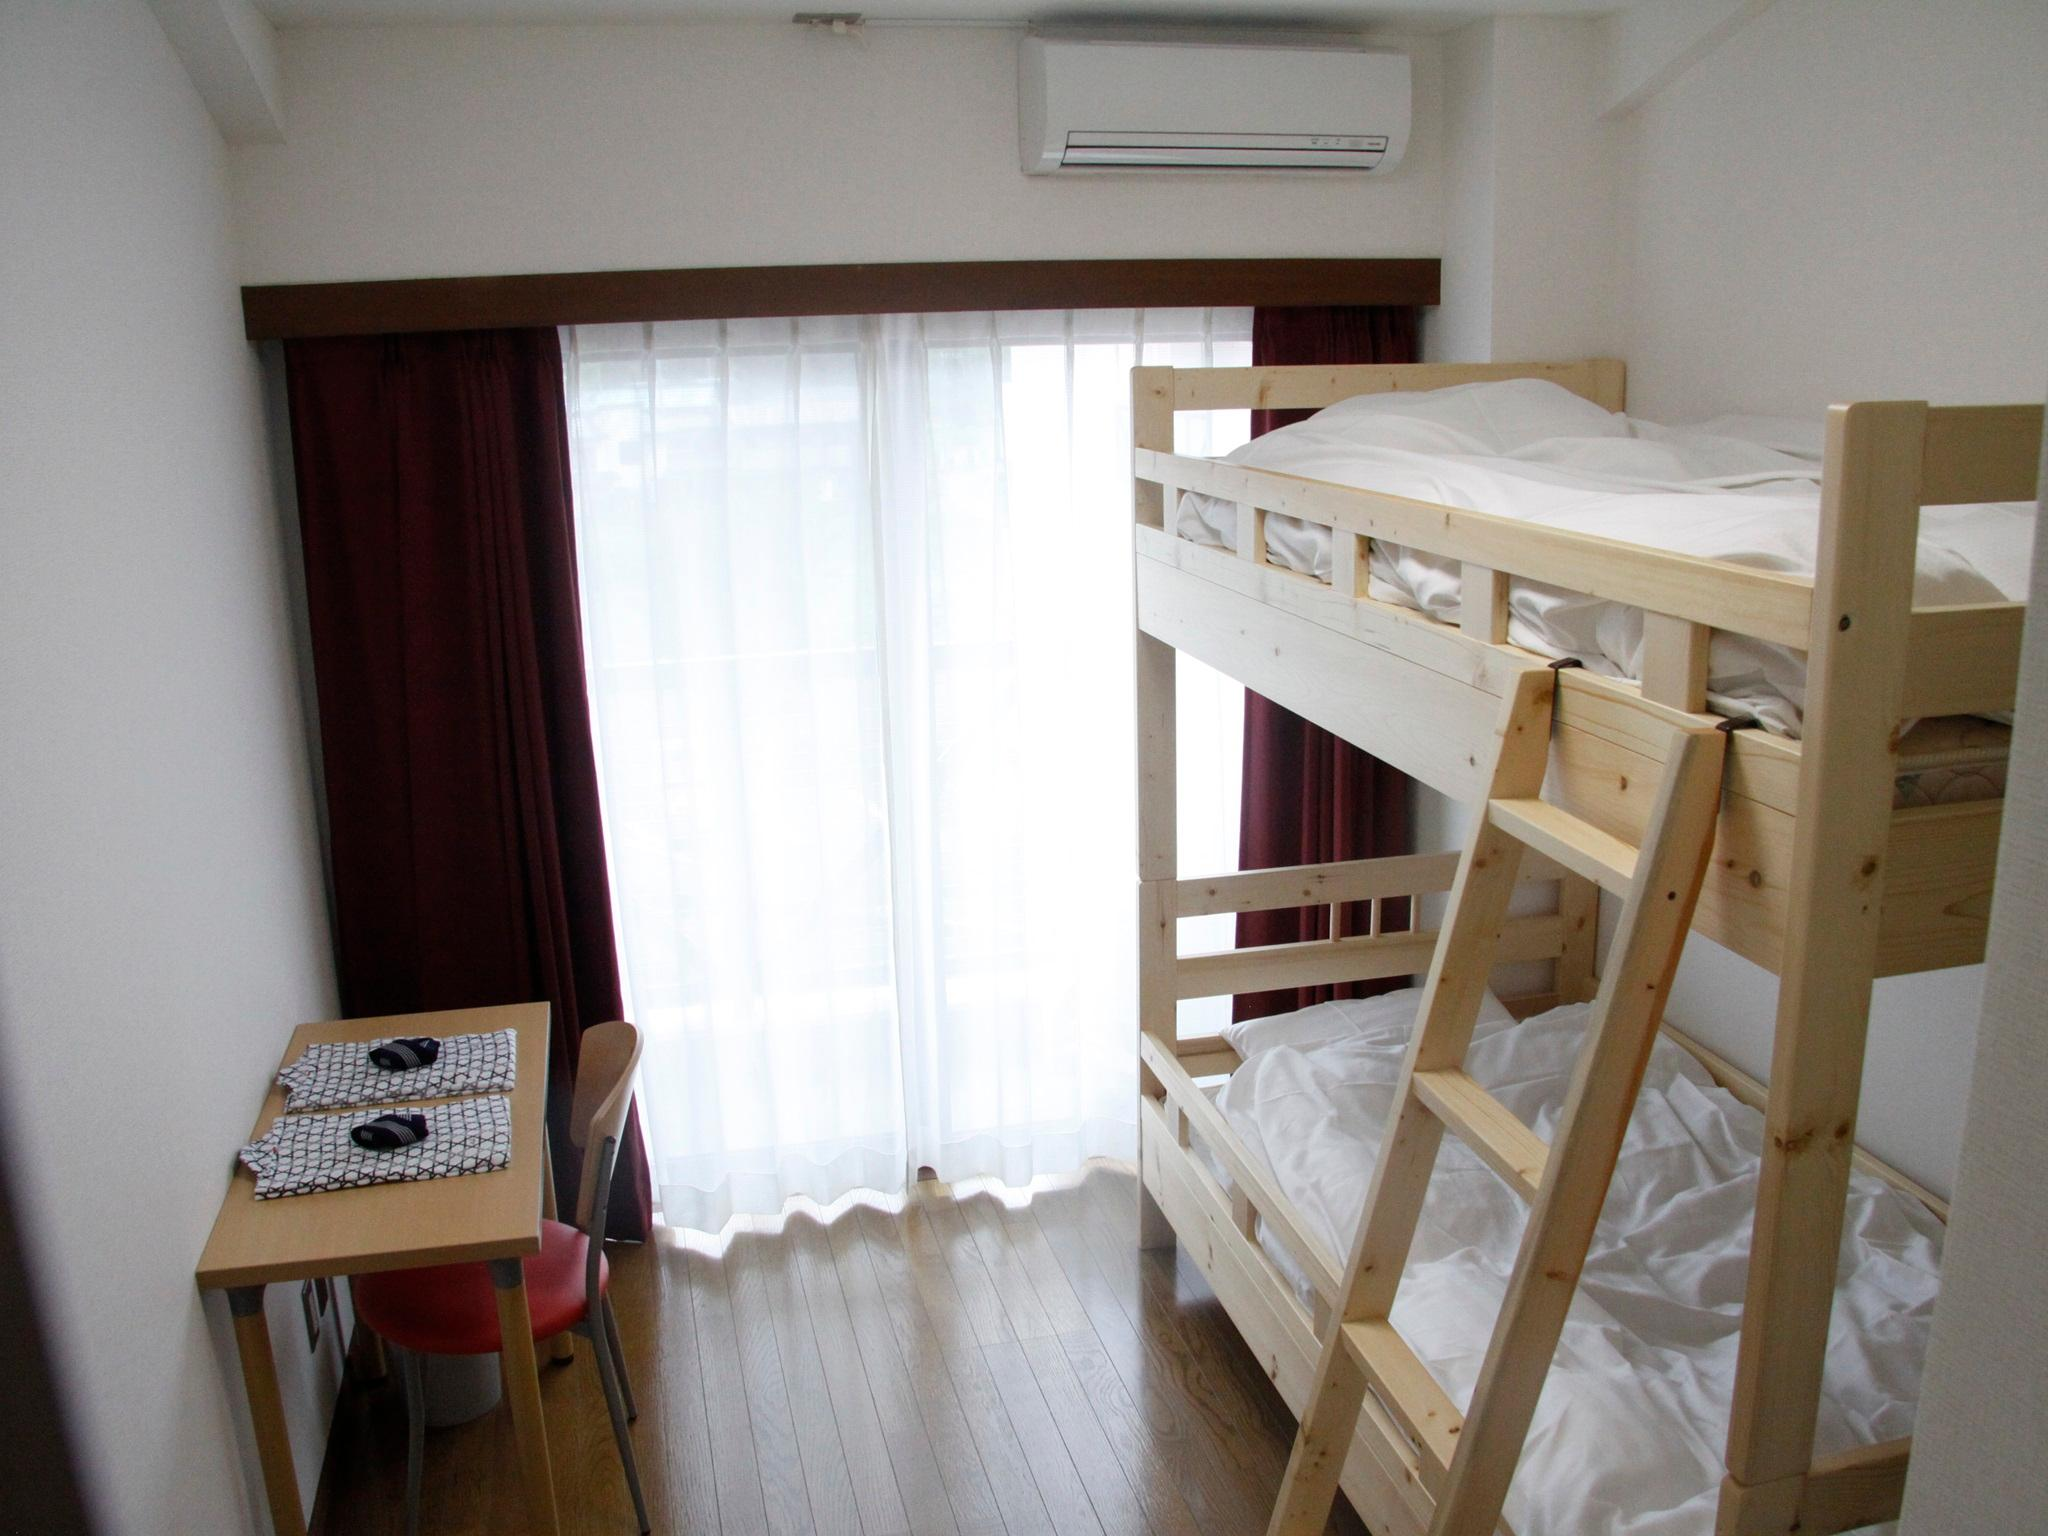 Bunk Bed (Two Persons)